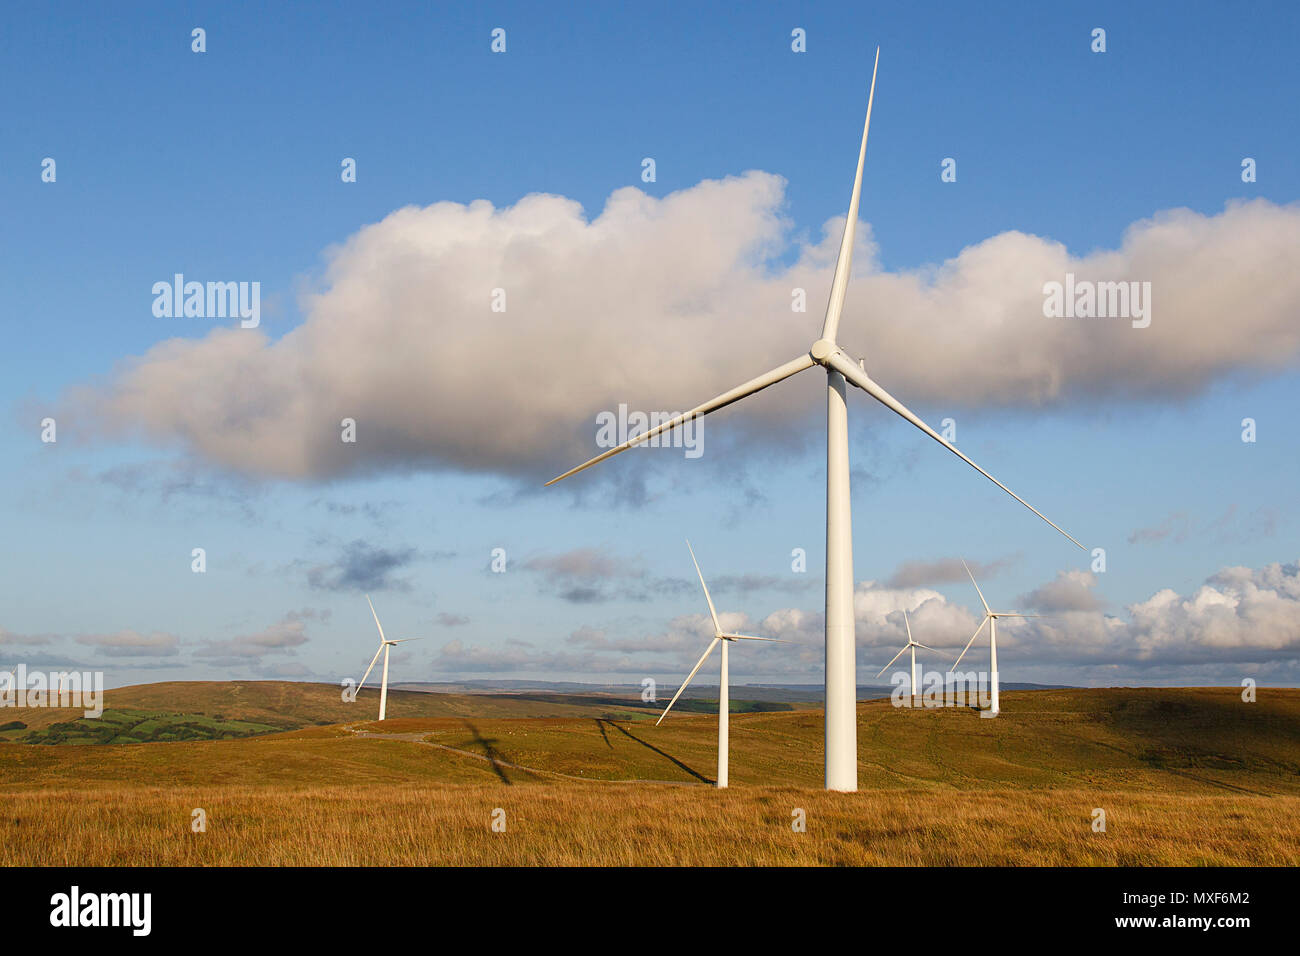 Environmentally friendly power generation wind power turbines in a rural location in Wales. - Stock Image